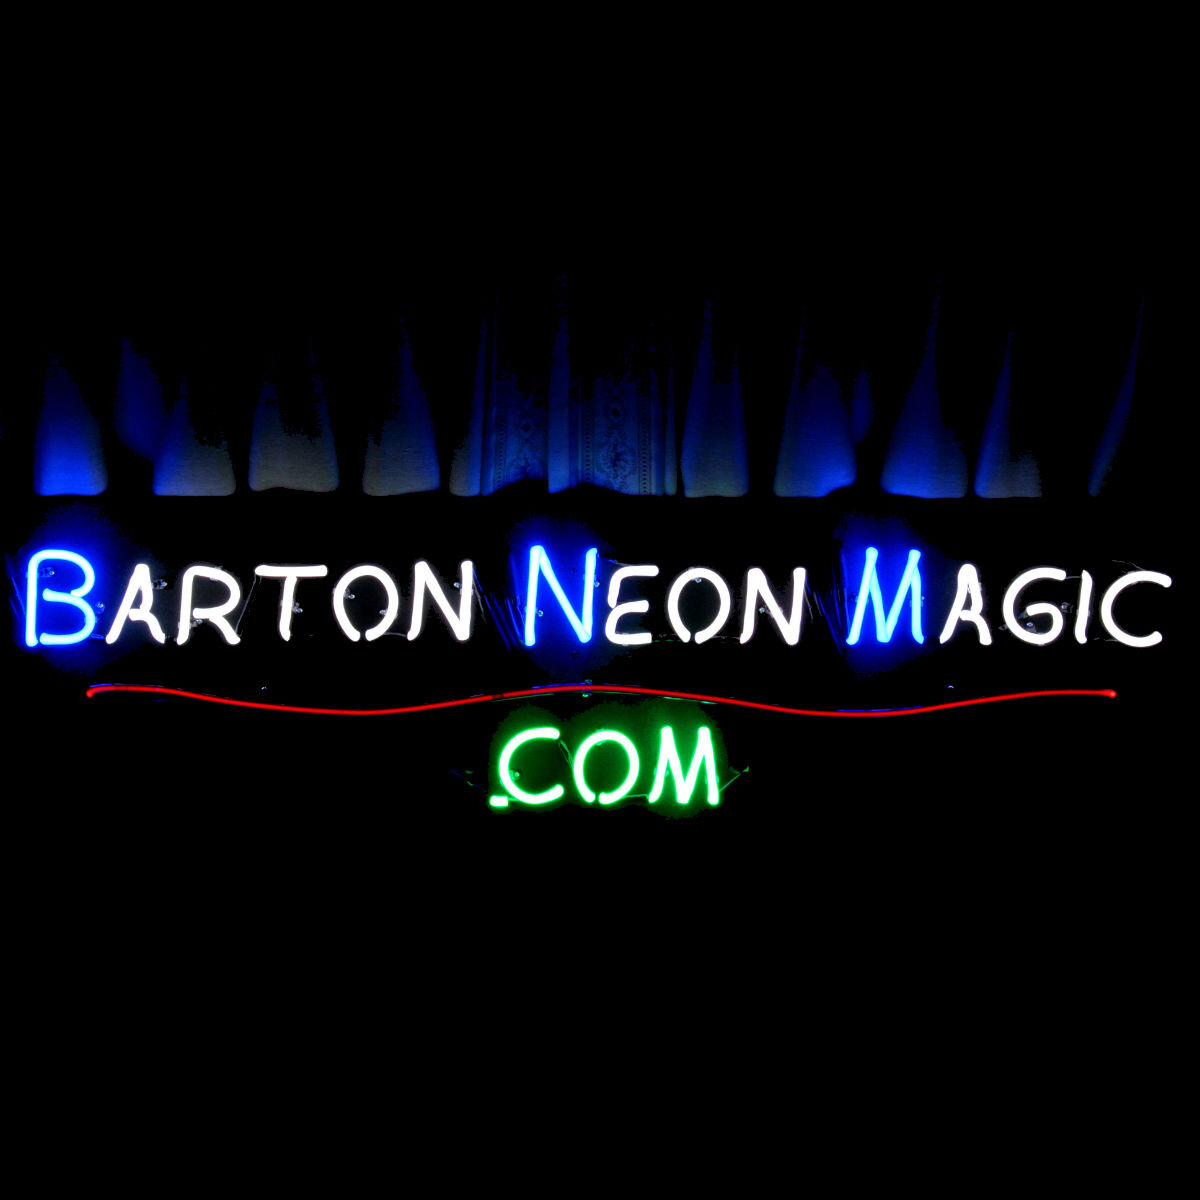 BartonNeonMagic.com - Fine Quality Custom Neon Lighting by John Barton